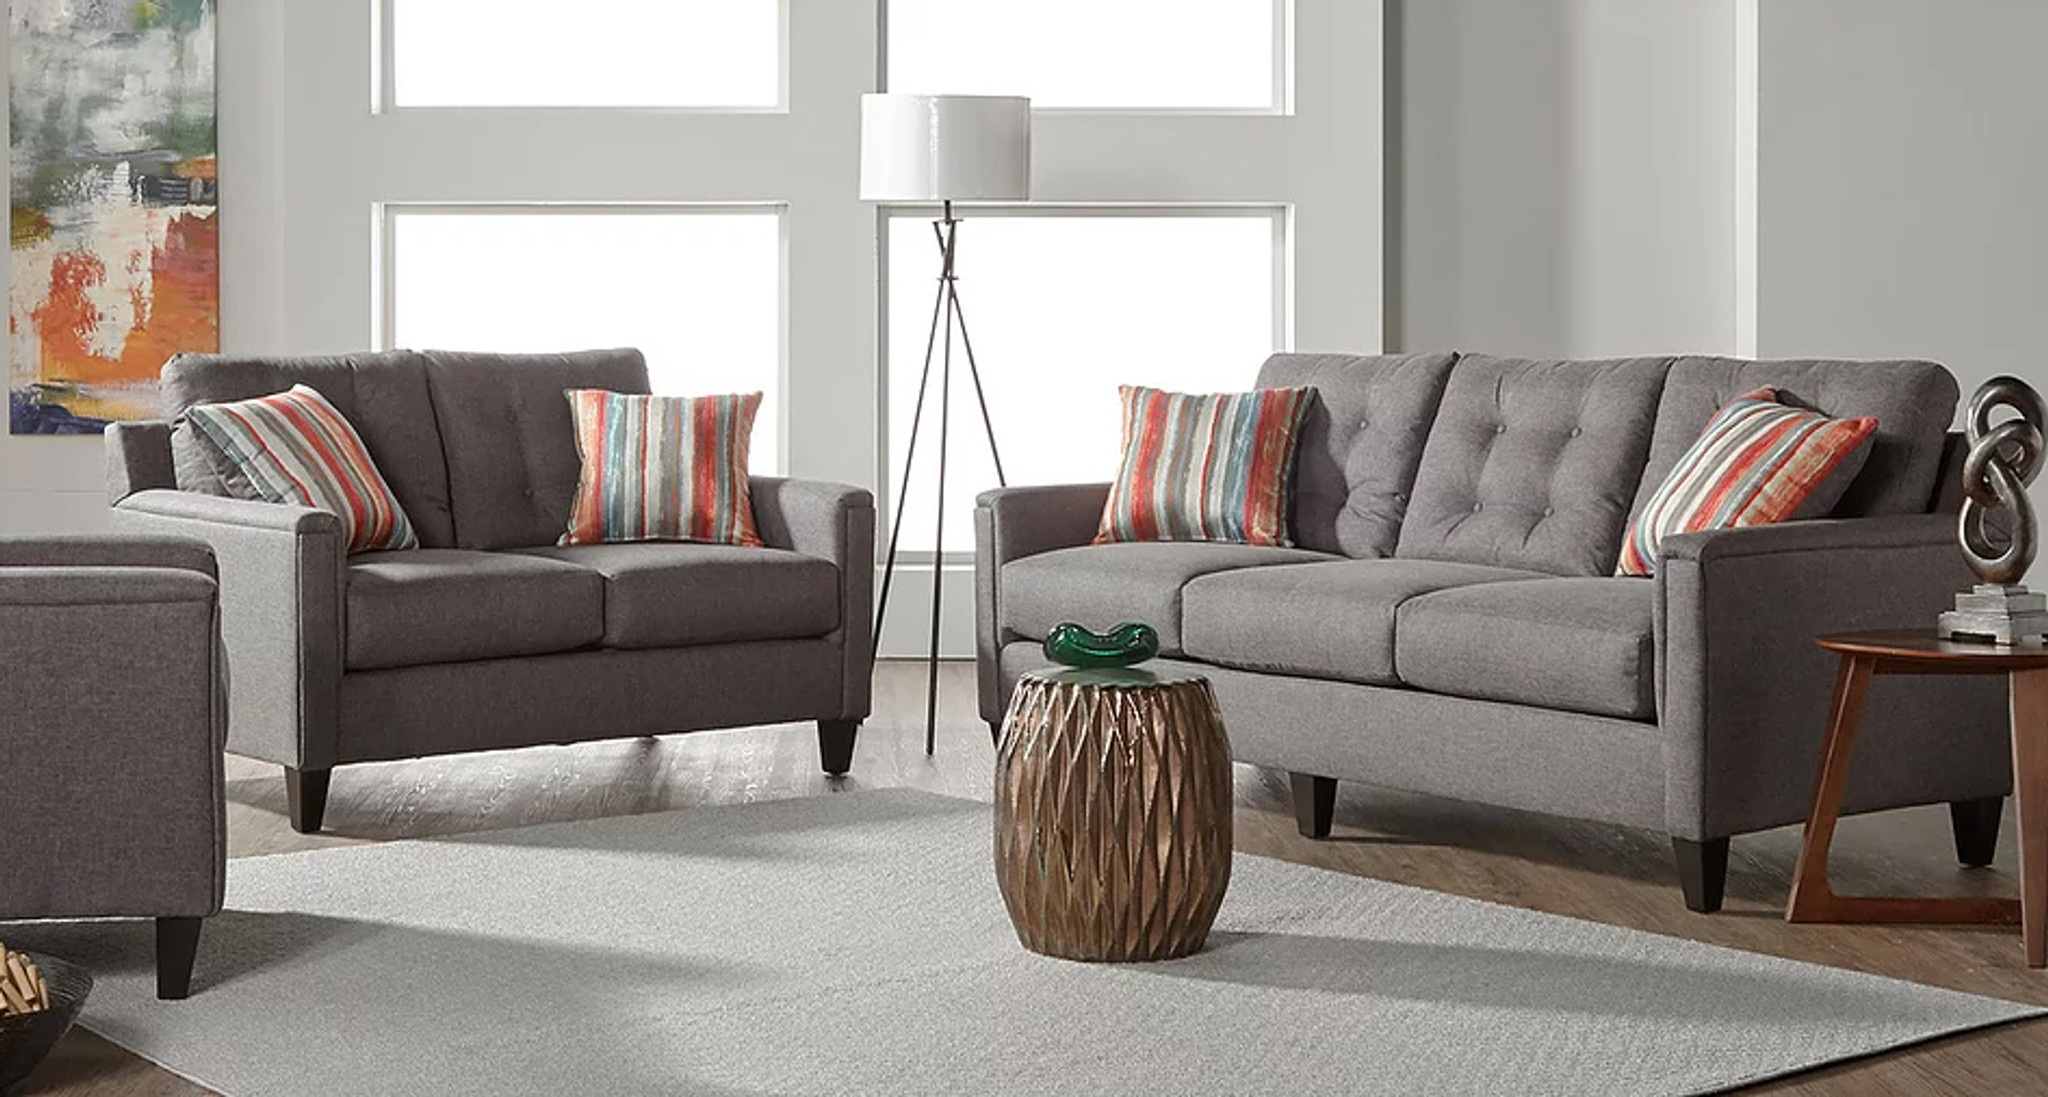 2 PCS JITTERBUG GRAY SOFA & LOVESEAT SET